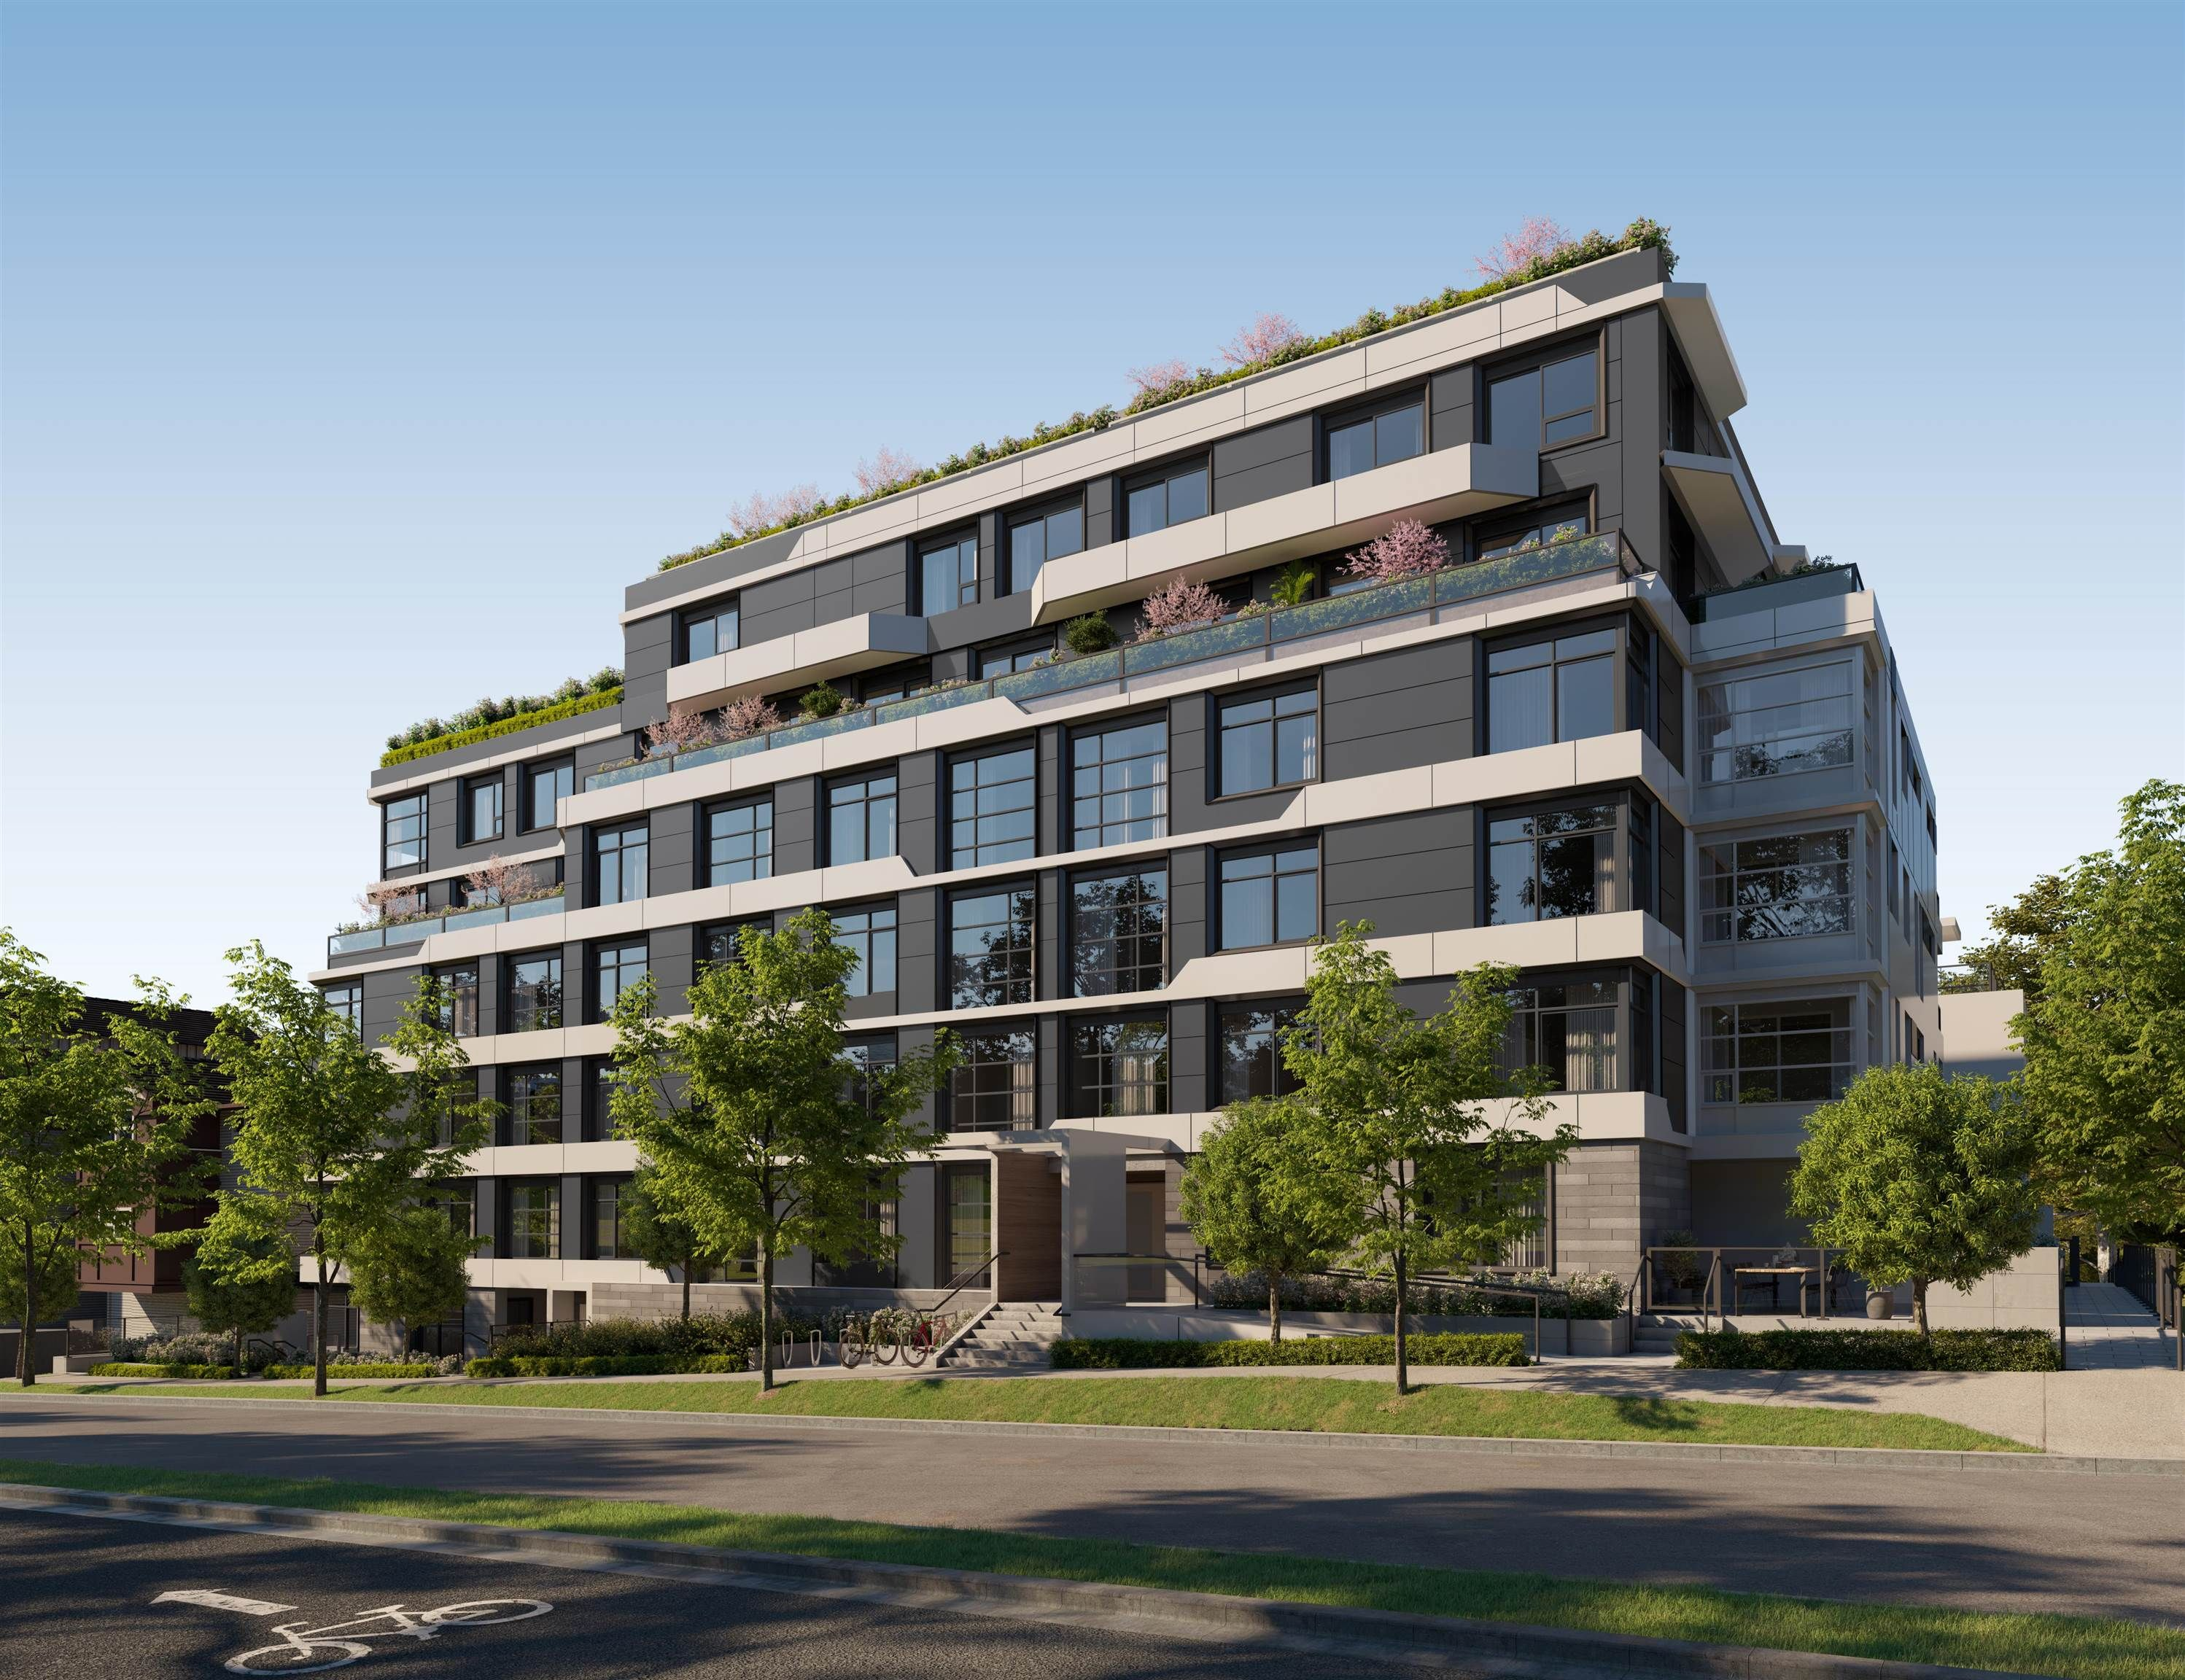 """Main Photo: 204 3264 VANNESS Avenue in Vancouver: Collingwood VE Condo for sale in """"Clive at Collingwood"""" (Vancouver East)  : MLS®# R2625658"""